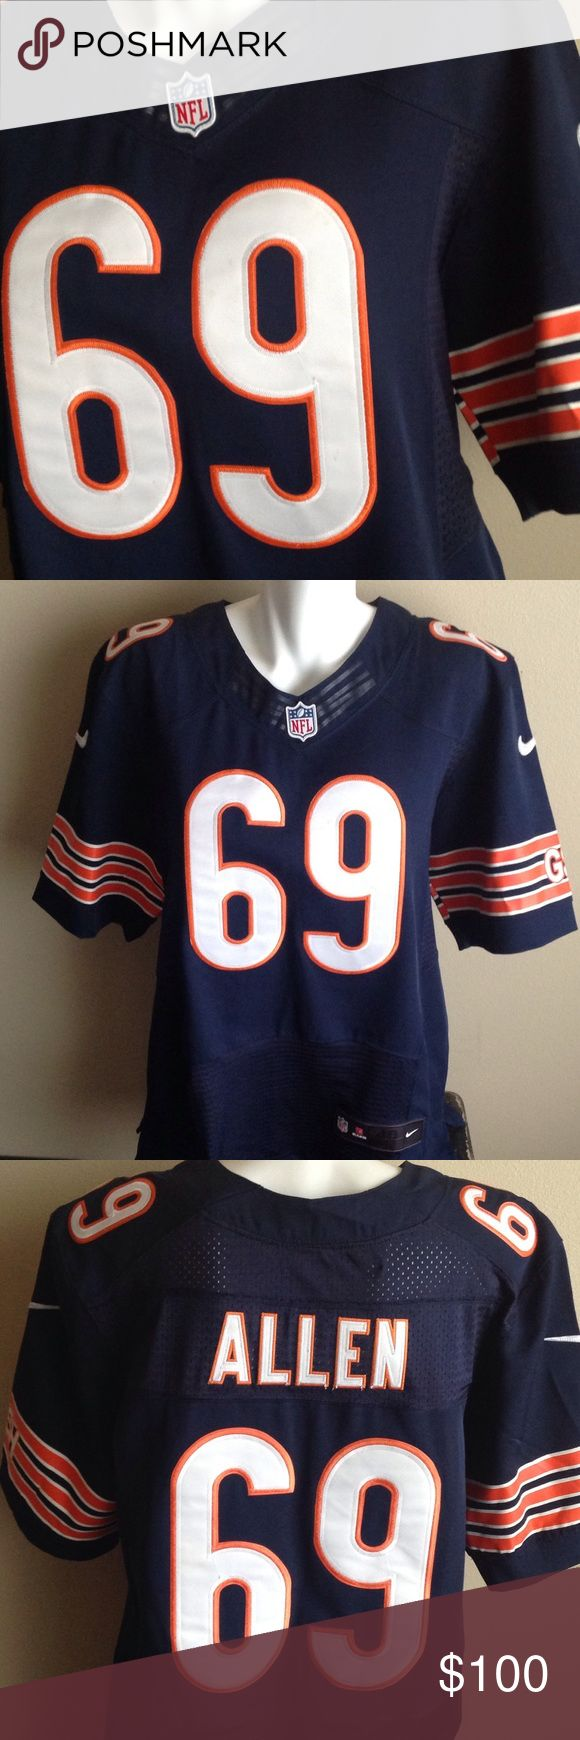 Jared Allen Chicago Bears Jersey Worn once to the Packers vs. Bears game in 2014 and since then I have gotten jerseys that fit me better...this is just too big for me to be comfortable. Nike Other